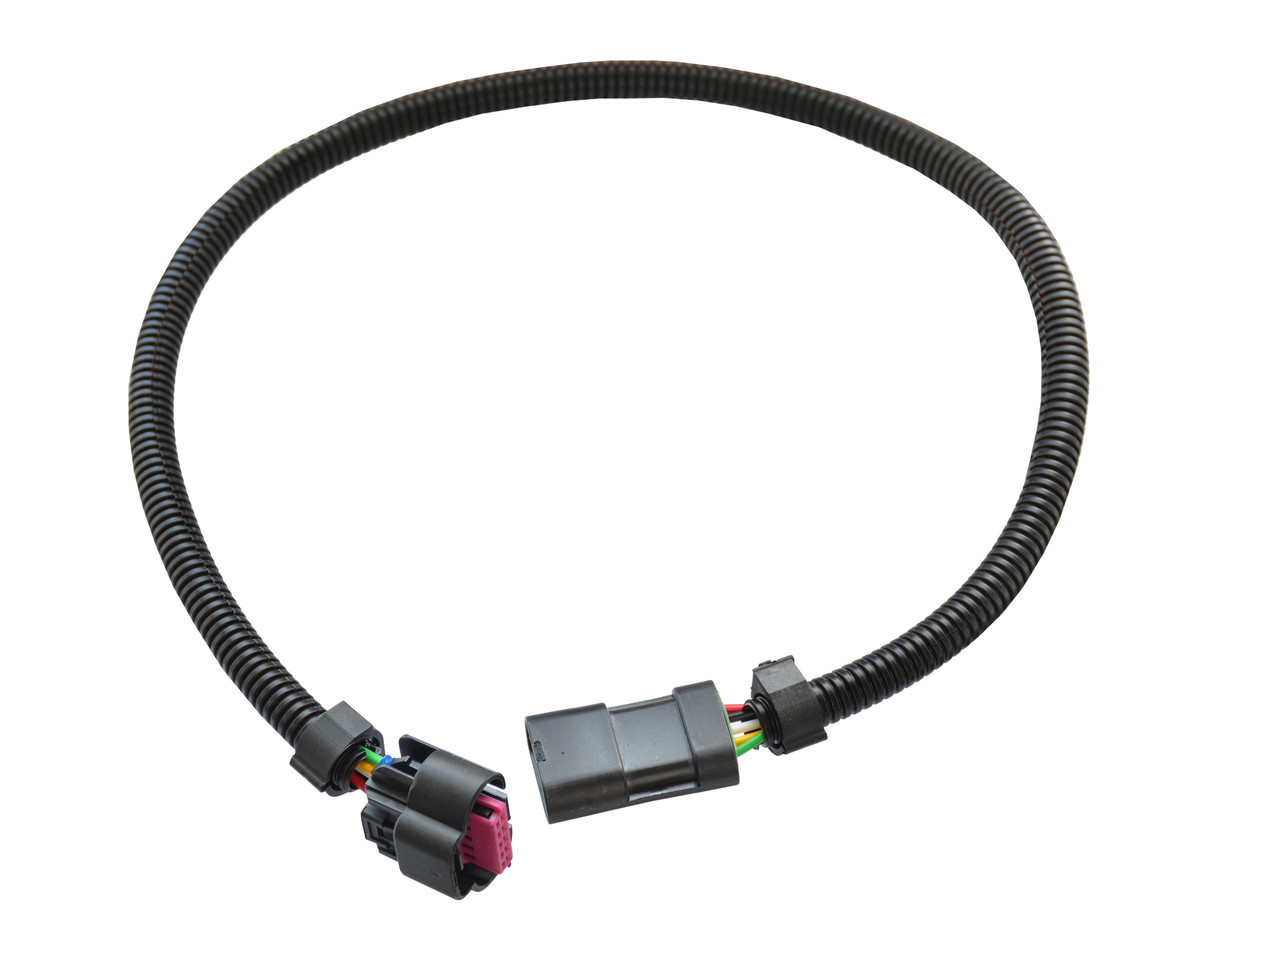 GM 5 Wire Mass Air Flow MAF Extension - Sensor Connector LS2, LS1 LQ4 4 8  5 3 6 0 4 3 and 8 1 GM Truck